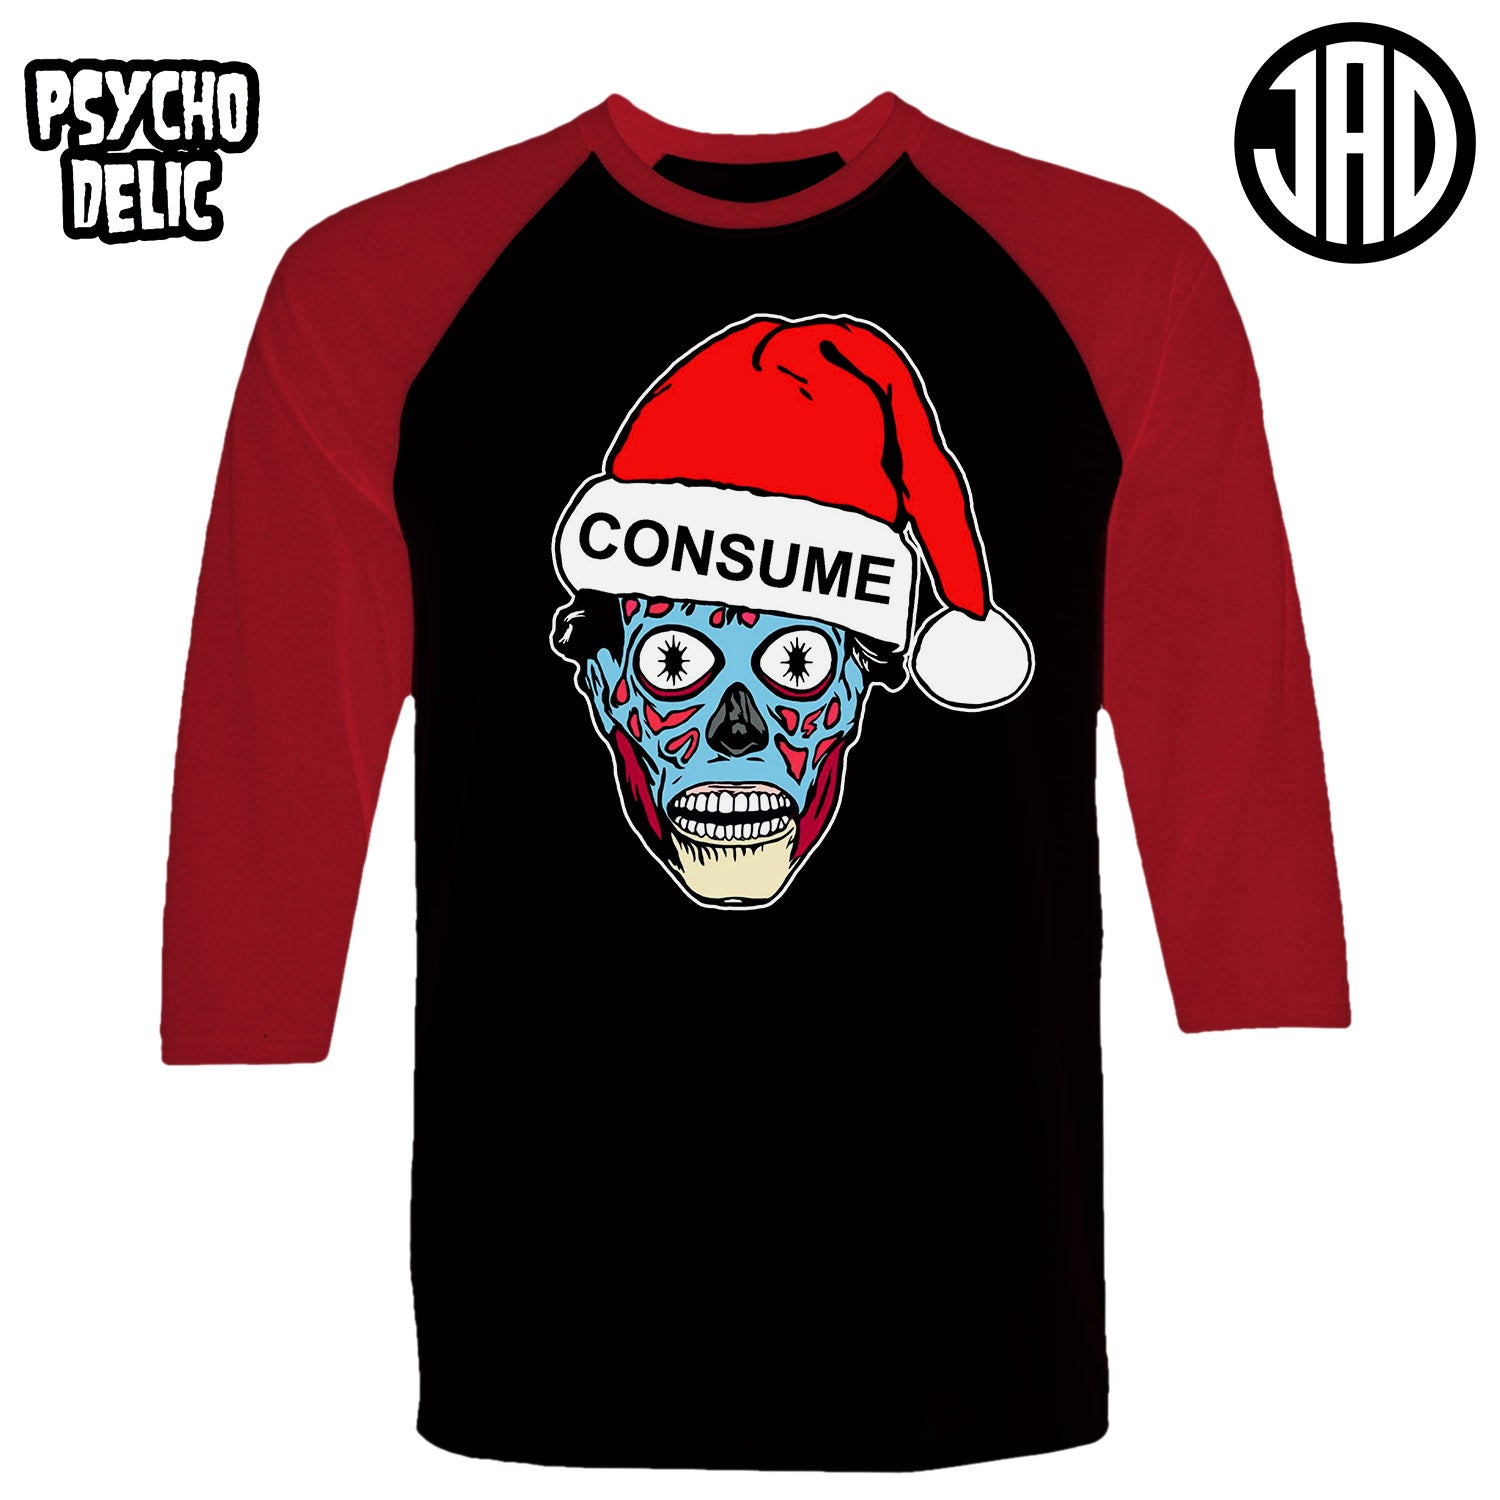 Holiday Consumer - Men's (Unisex) Baseball Tee